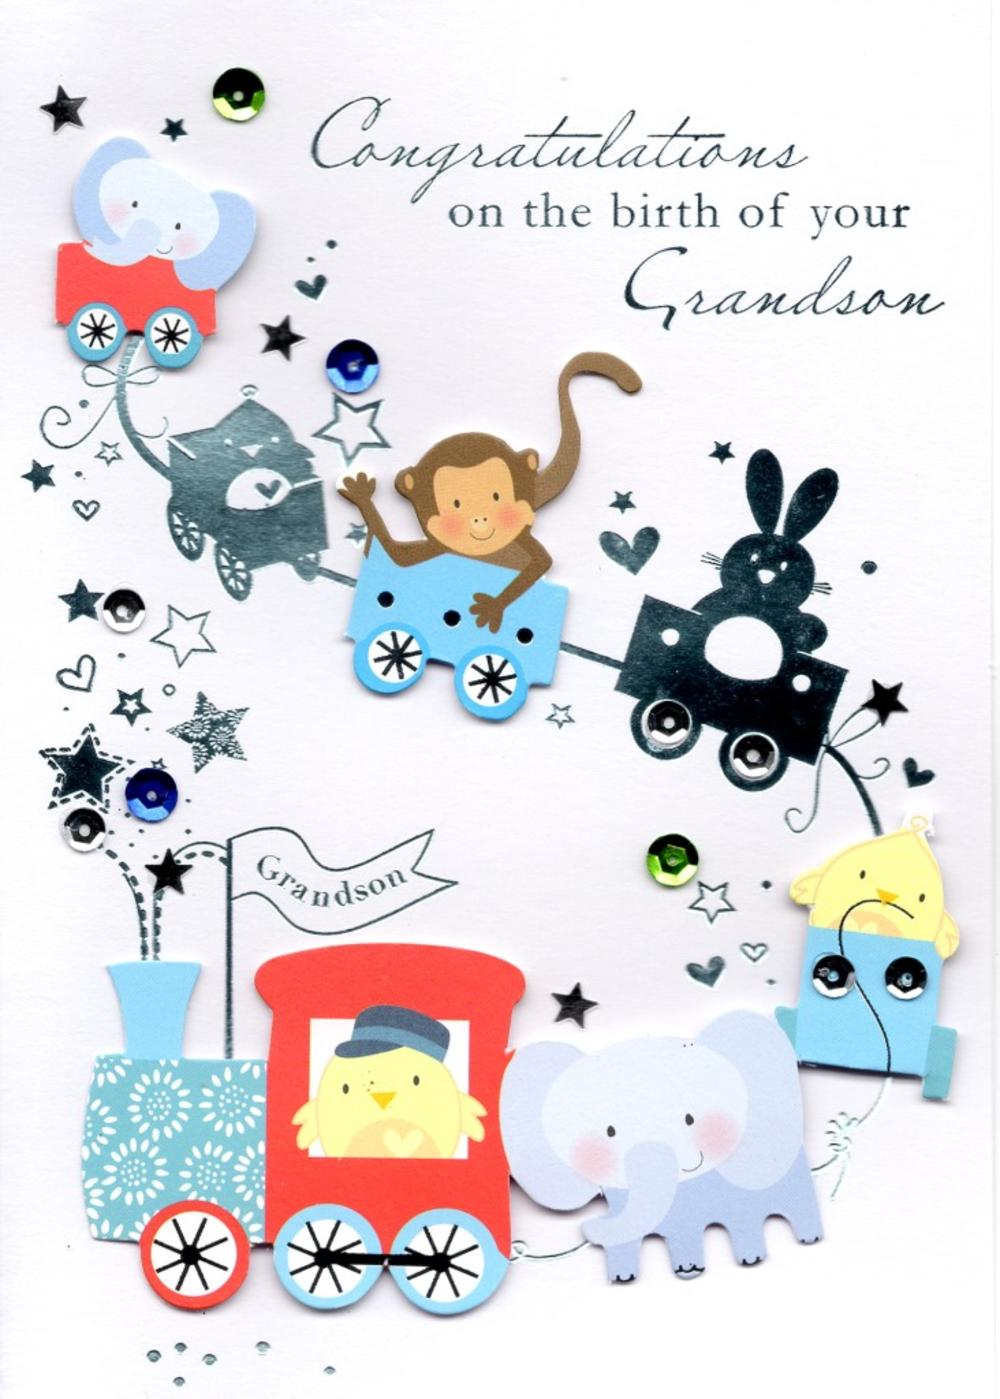 ... Birth Of Your Grandson Greeting Card | Cards | Love Kates